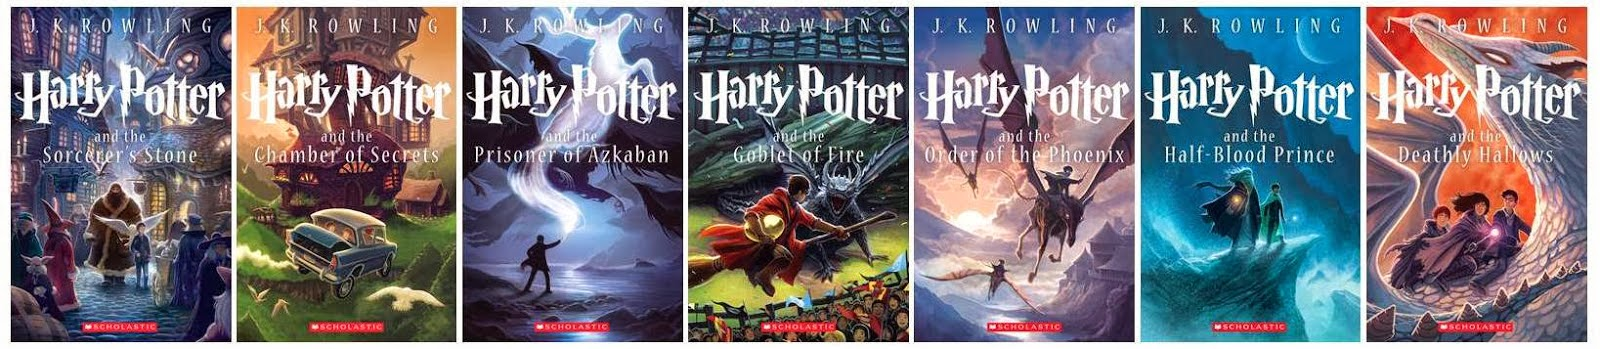 tutti i libri di harry potter in ordine